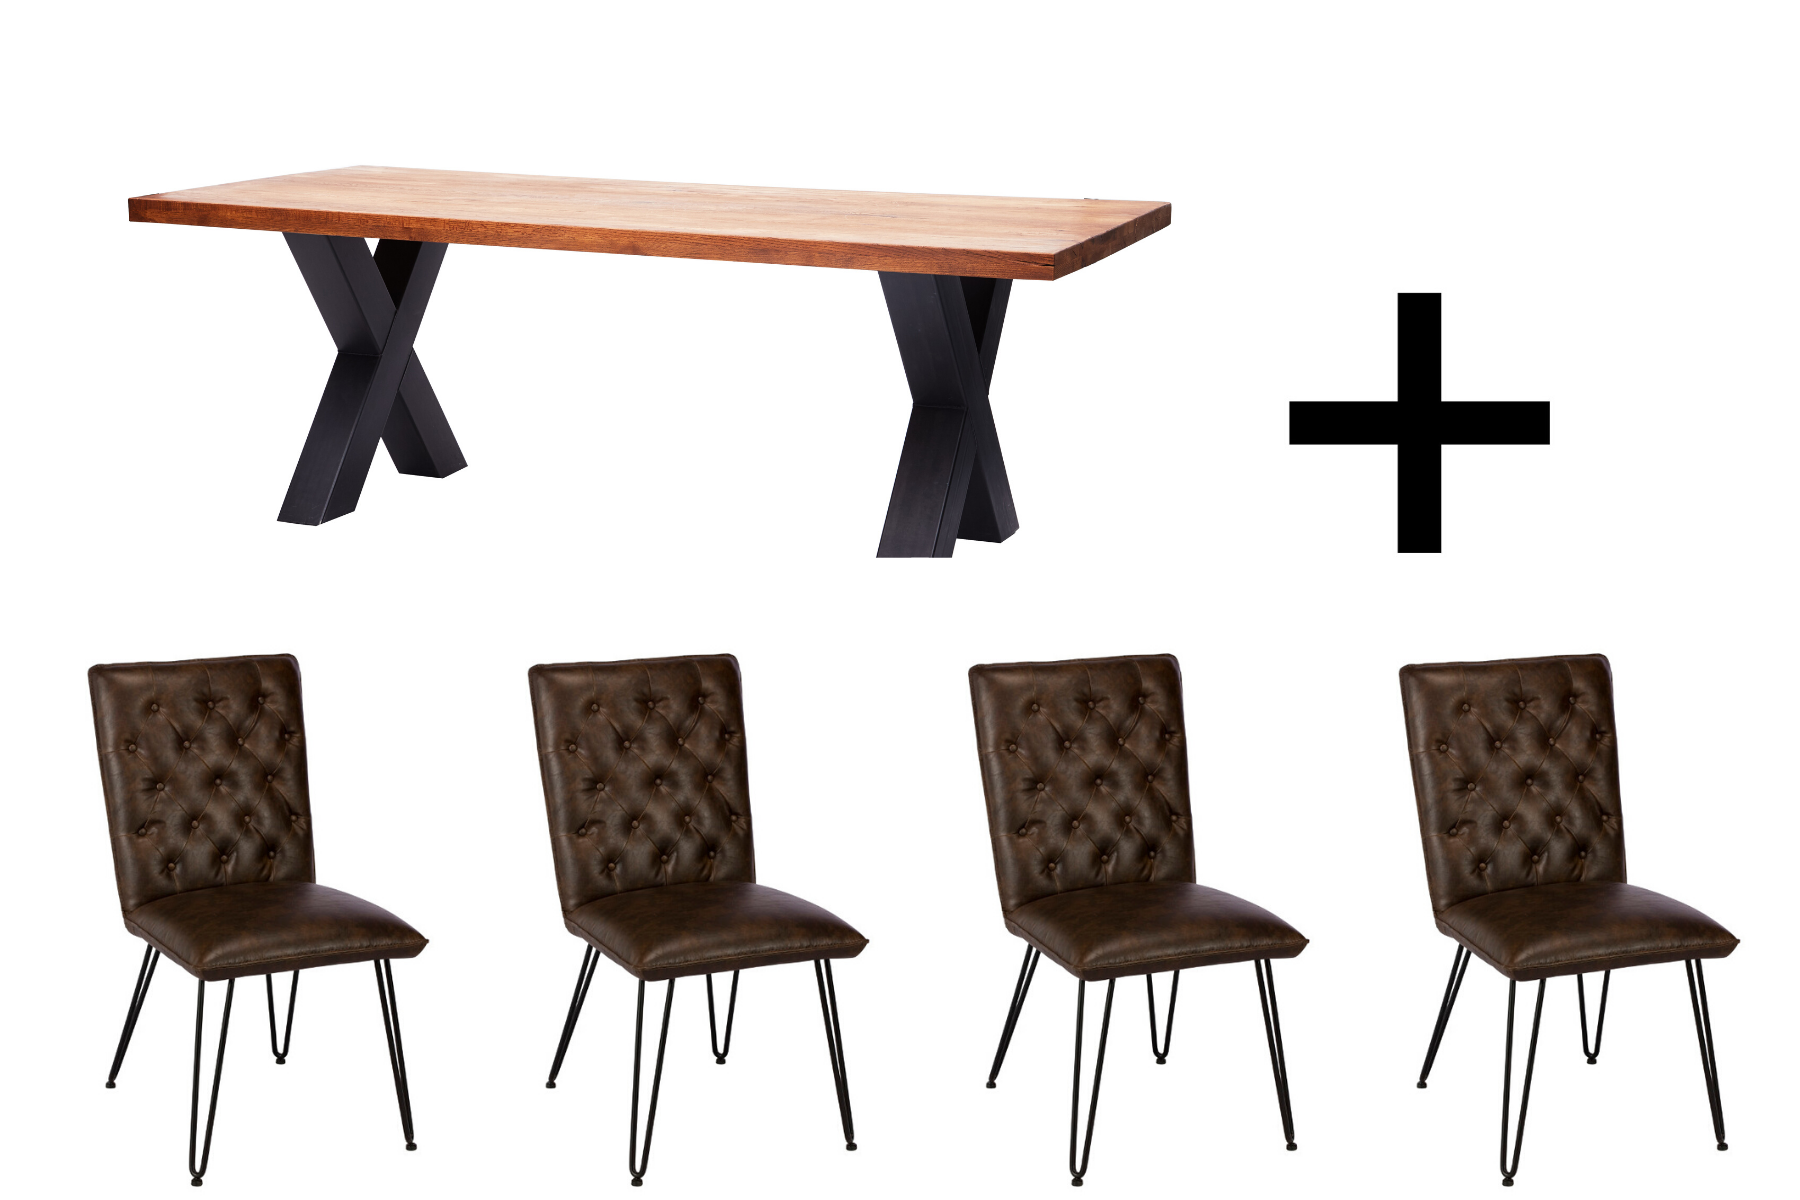 Heathfield 220cm Dining Table and 4 Lewis Dining Chairs - Bundle Deal